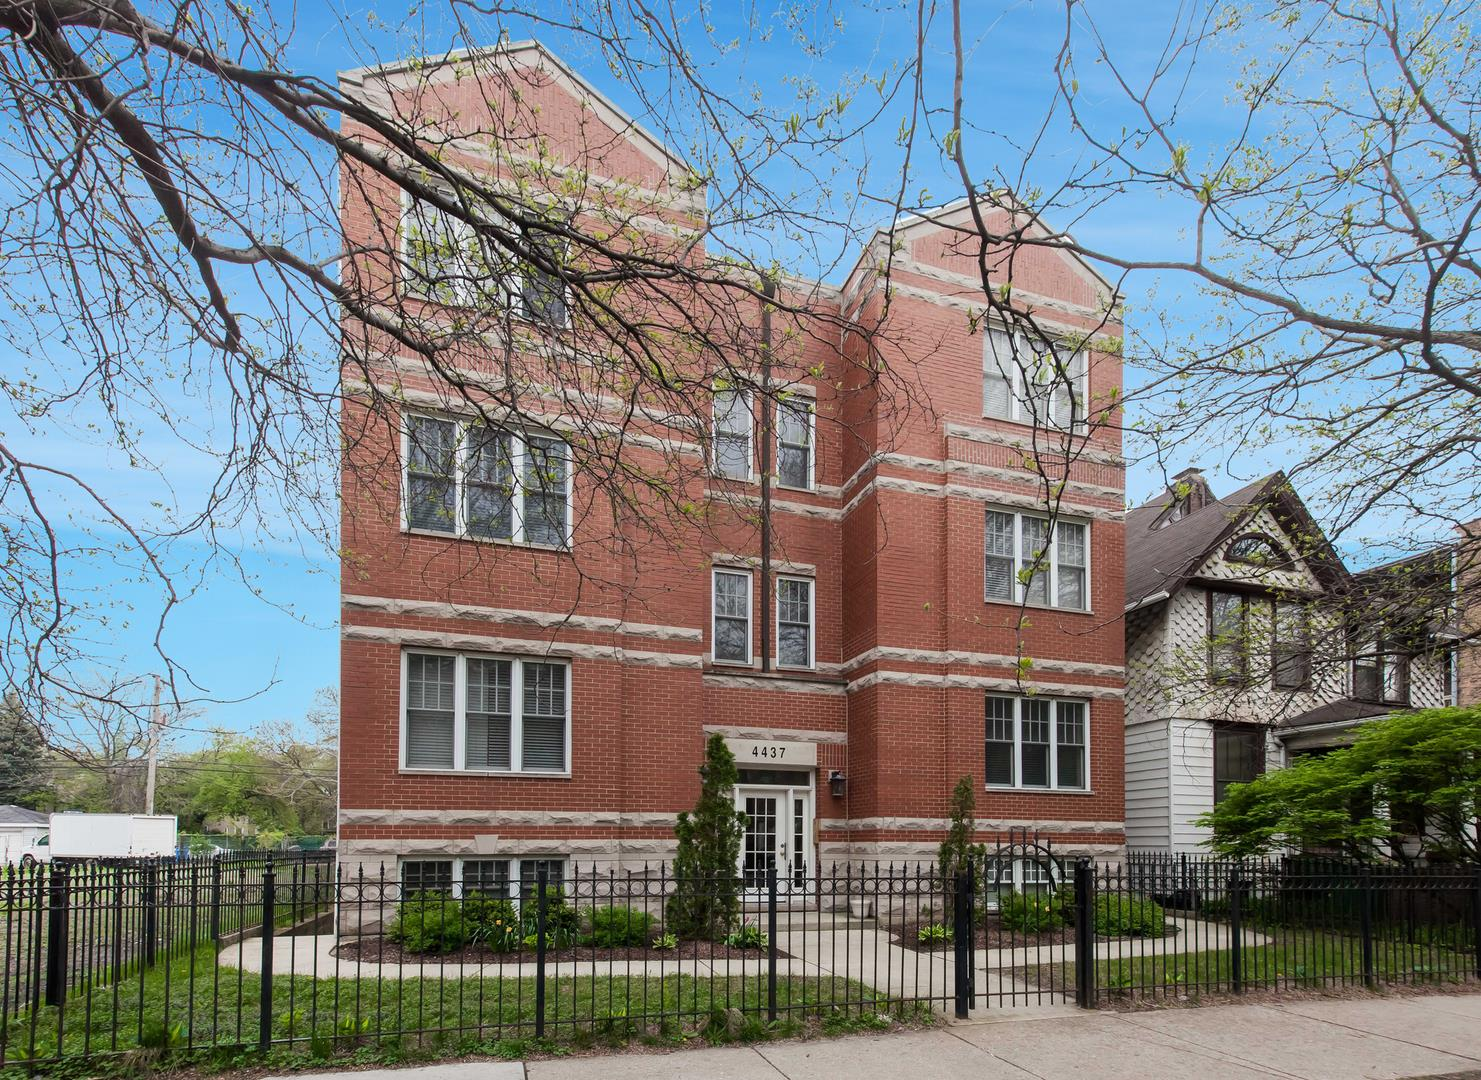 4437 N ASHLAND Avenue #2N, Chicago, IL 60640 - #: 10876875